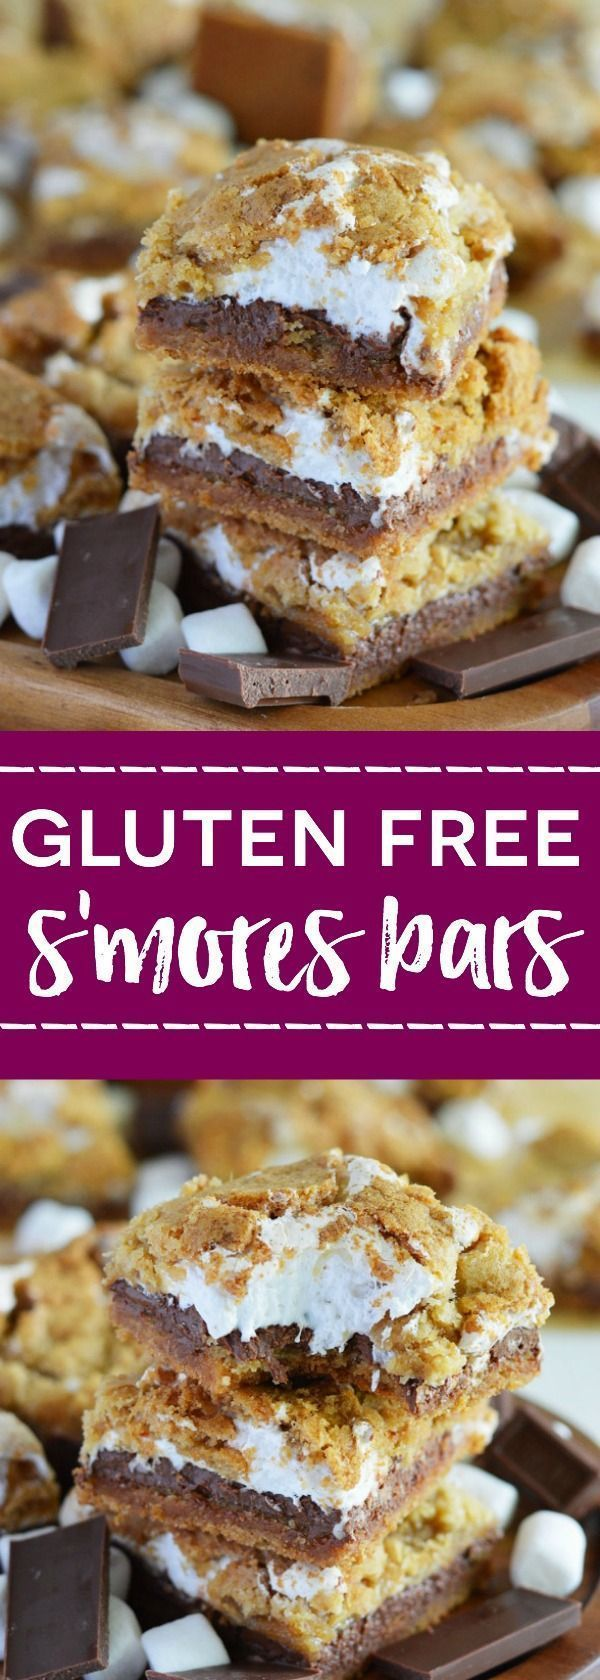 Recipe for Gluten Free S'mores Bars